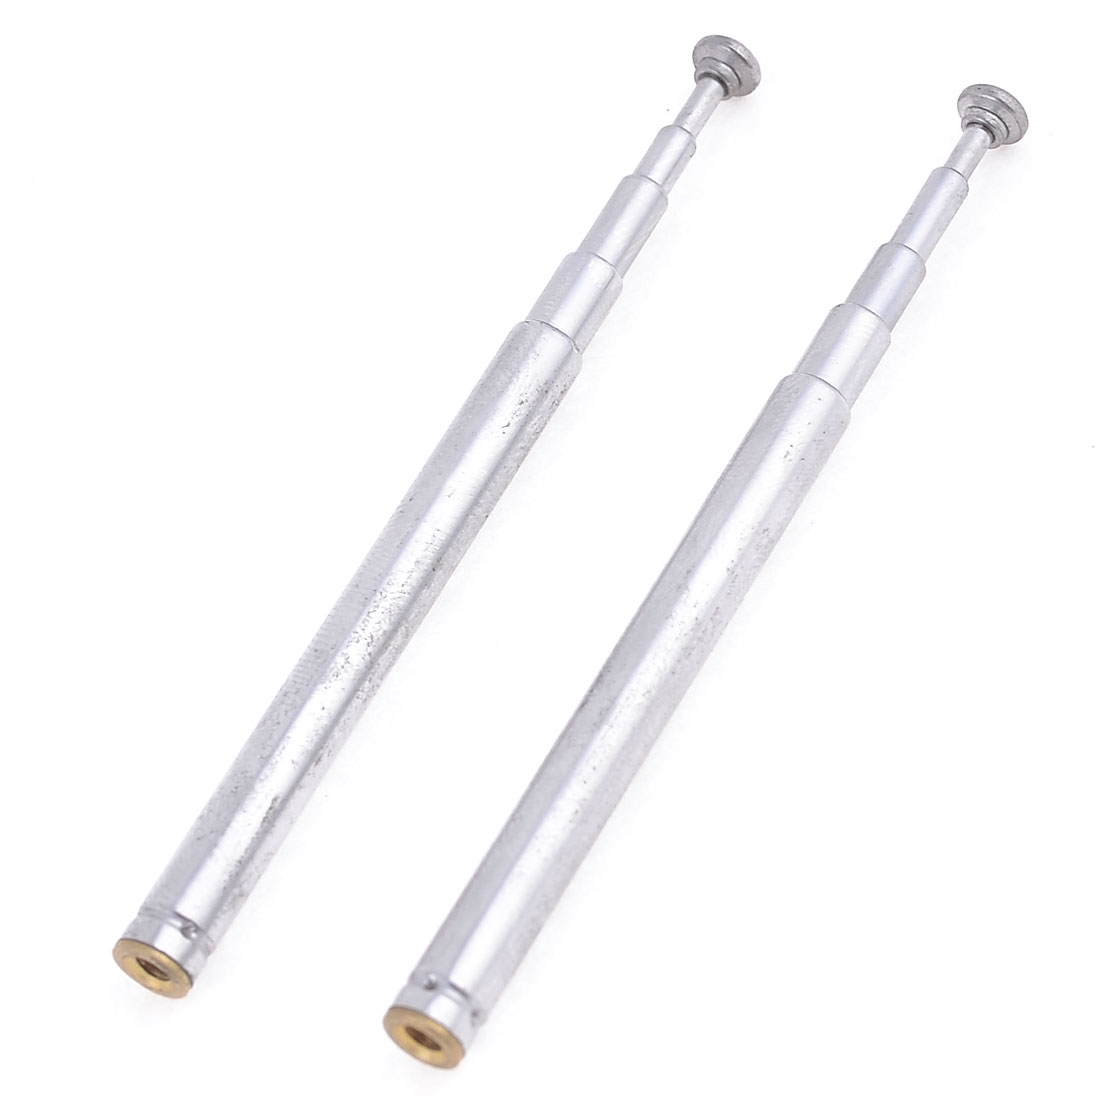 Pair Silver Tone FM Radio TV 5 Sections Telescopic Antenna Aerial 170mm